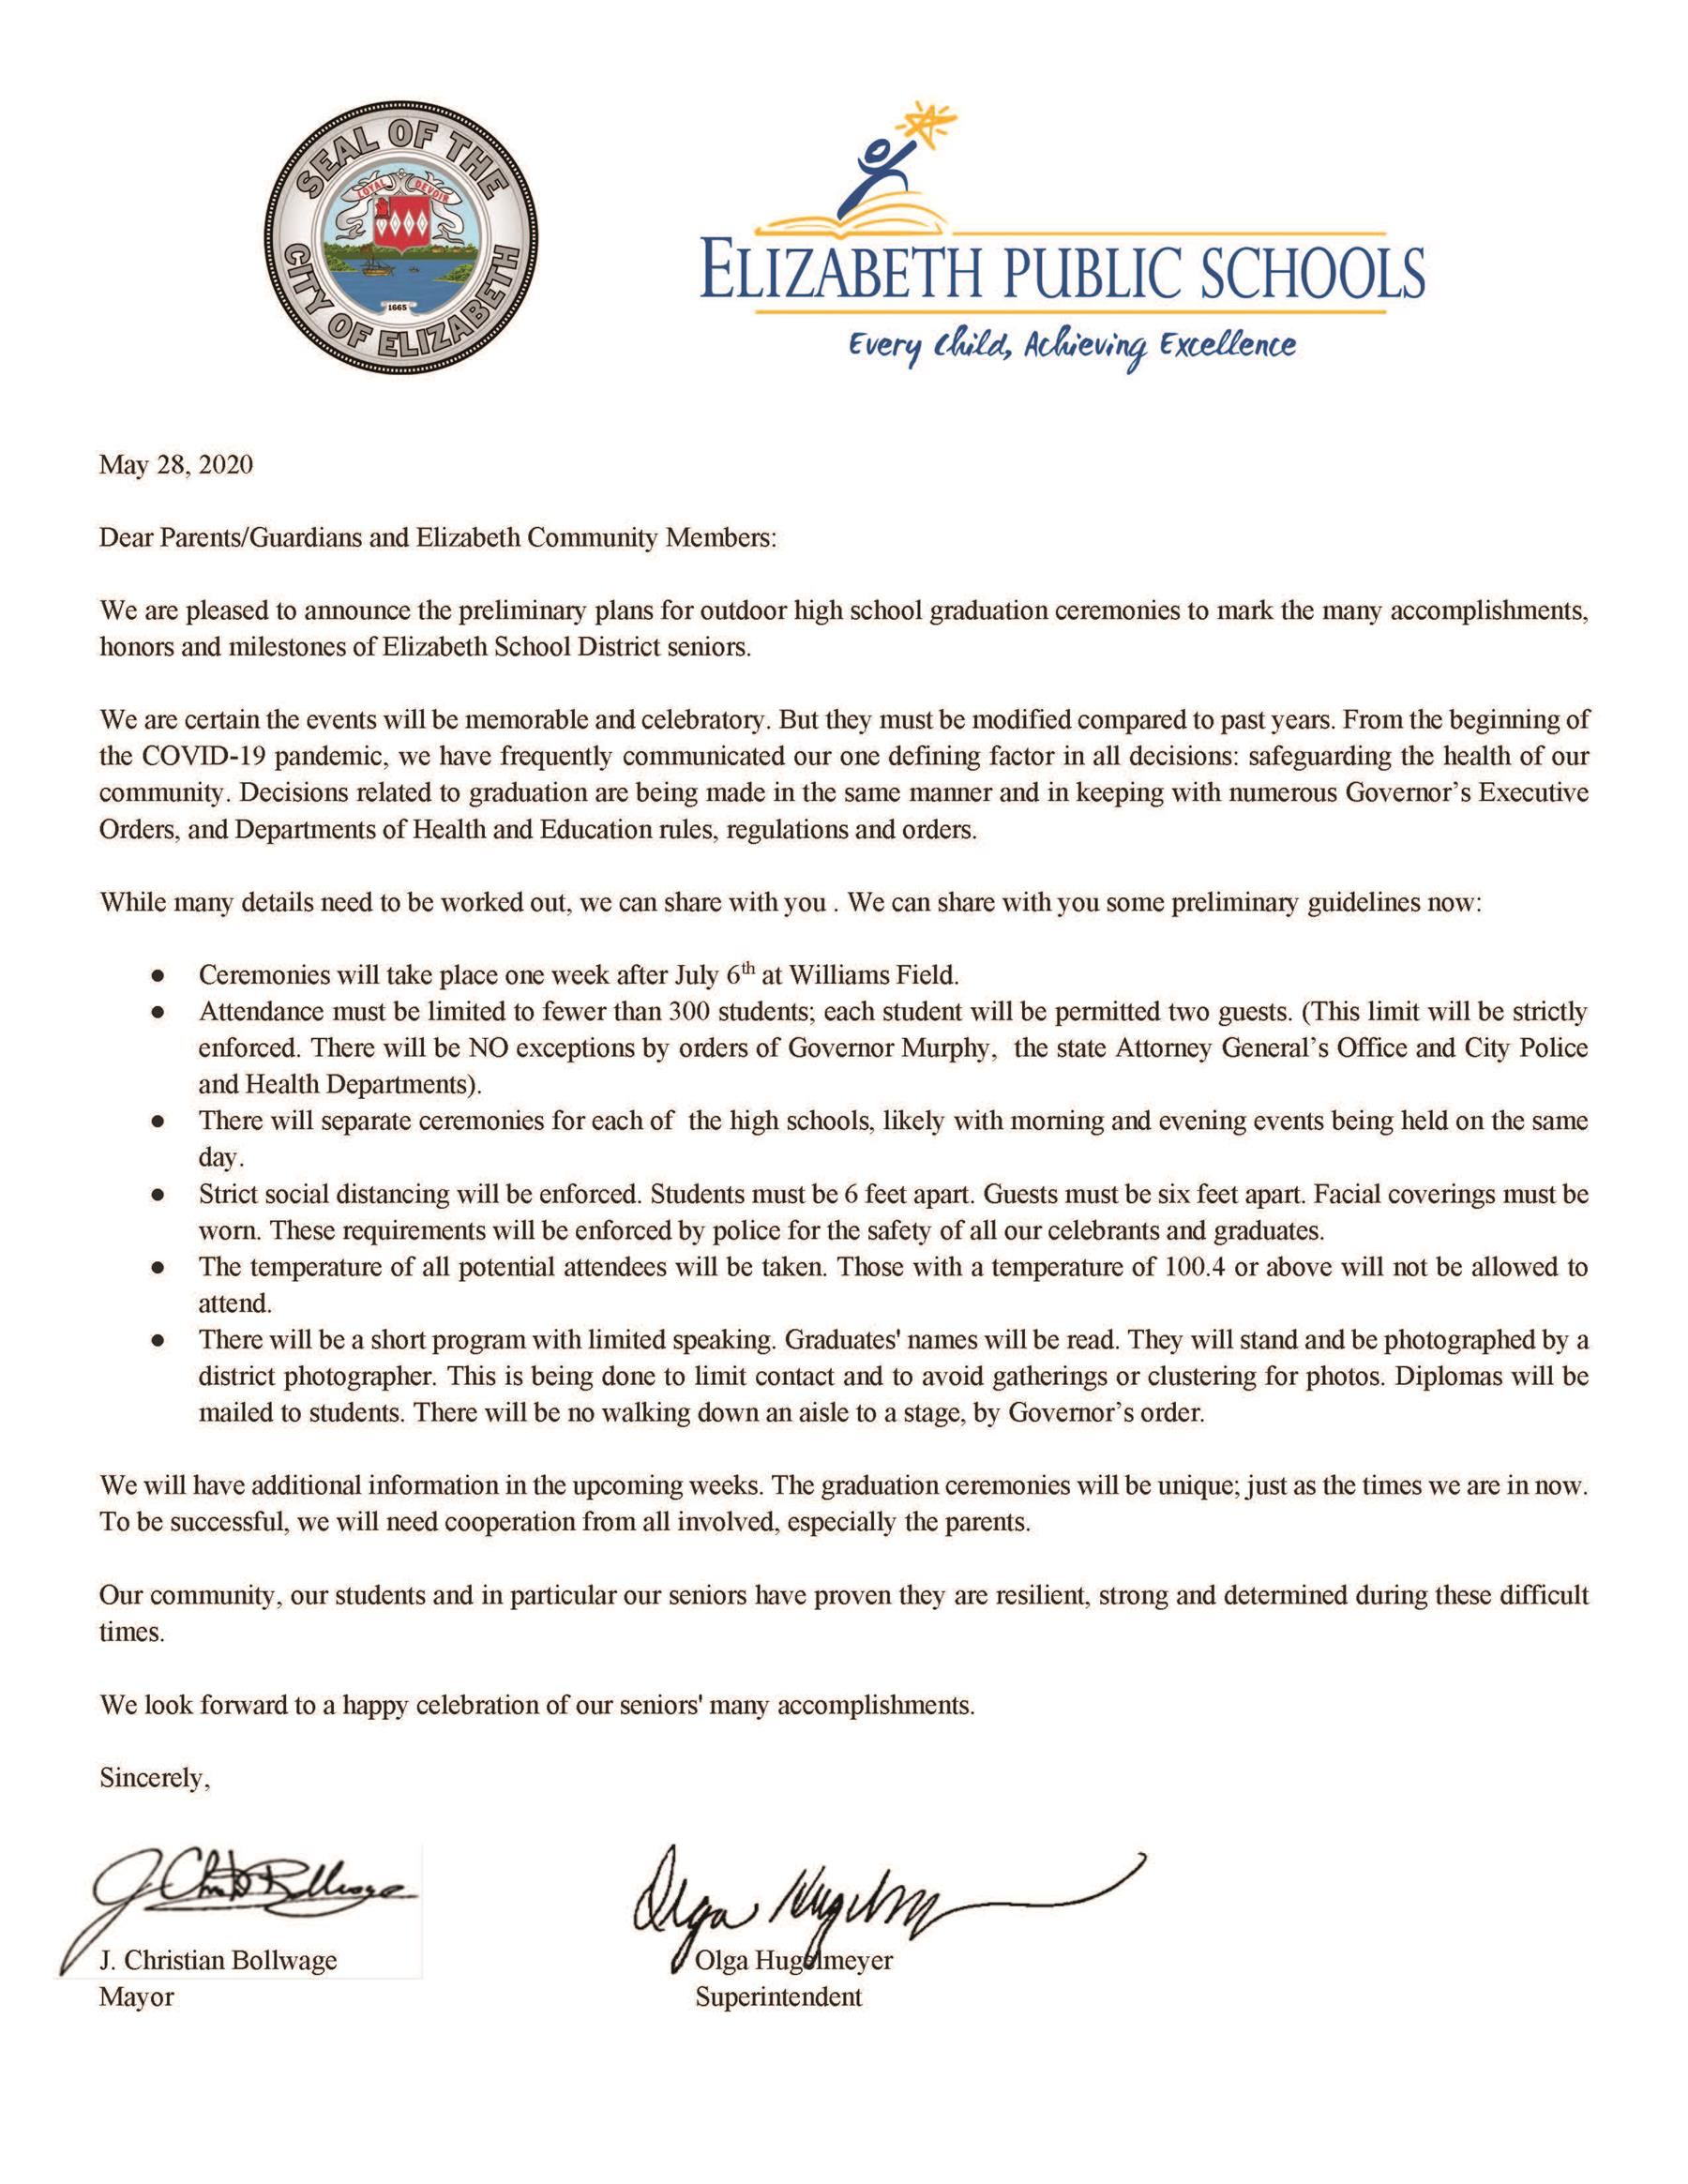 Joint Letter form Mayor and Superintendent Regarding Graduation